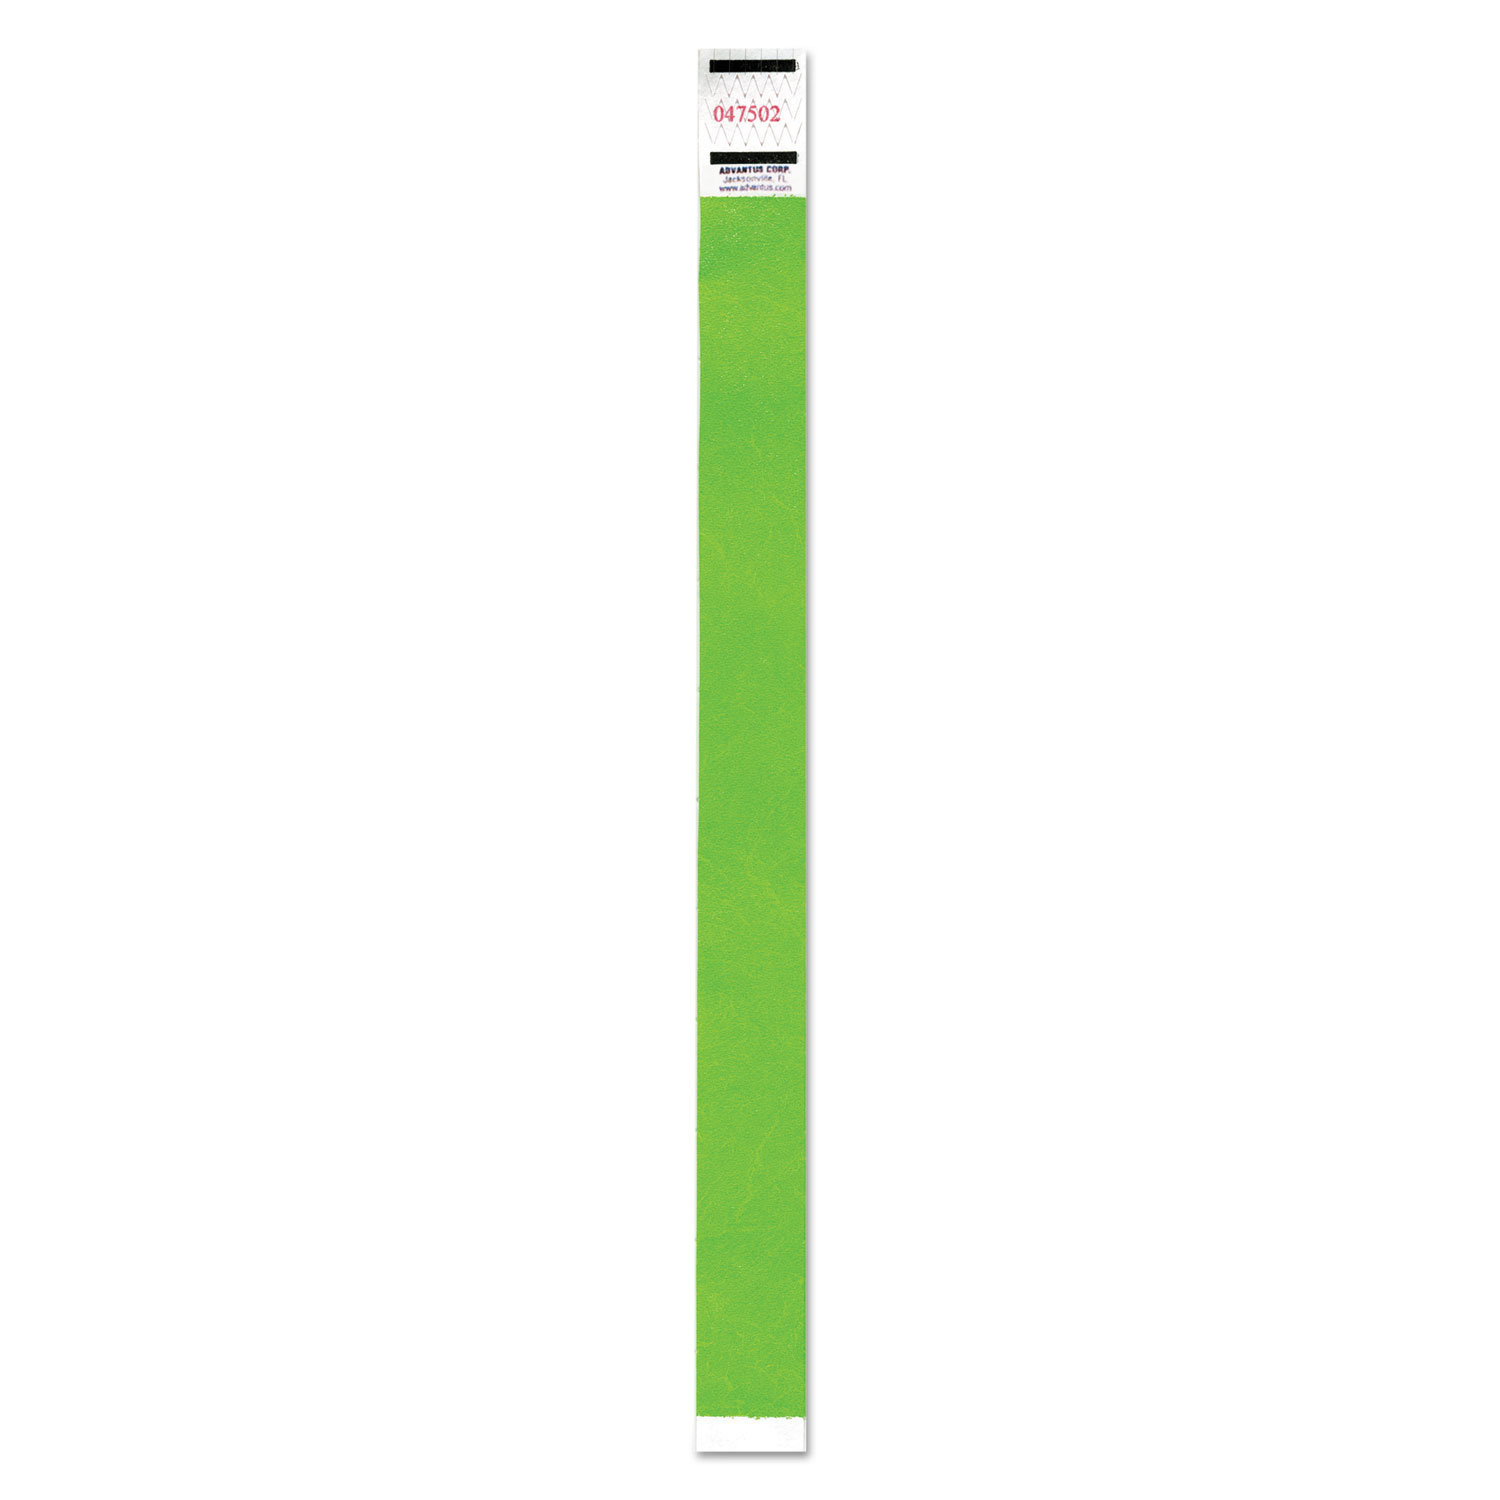 Crowd Management Wristband, Sequential Numbers, 9 3/4 x 3/4, Neon Green, 500/PK